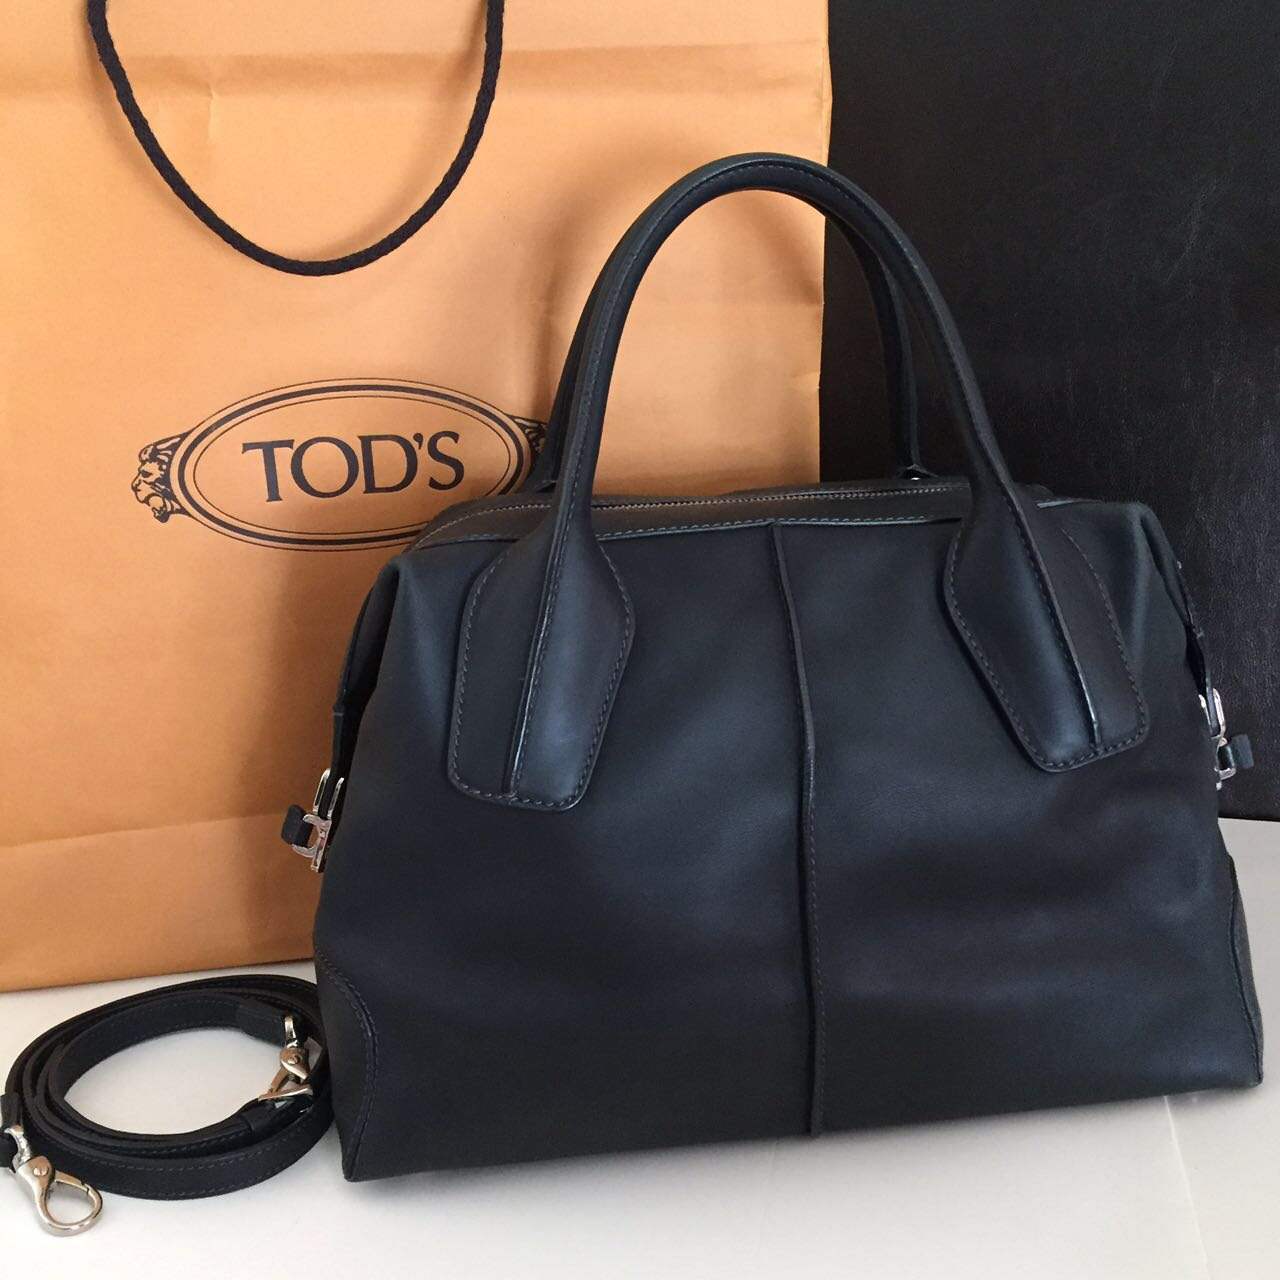 black-tods-handbag-with-swiveling-straps-brother-pornfuck